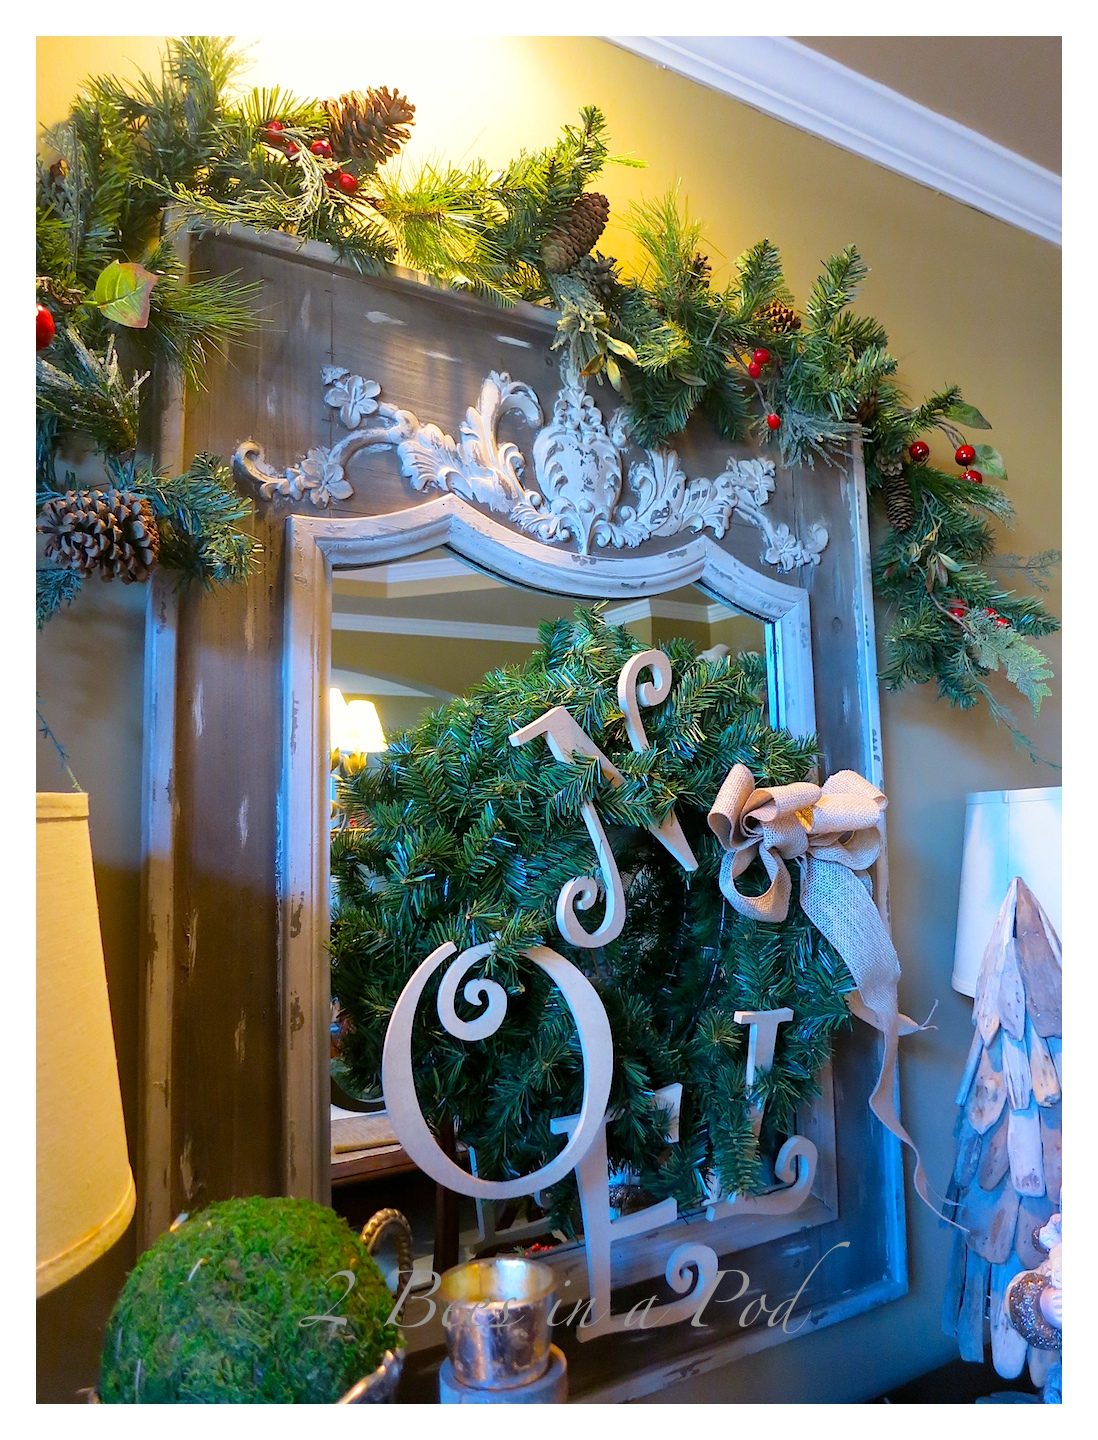 """IThis year I made the """"NOEL"""" wreath for our dining room mirror.Rustic Christmas - I love the crusty, rusty, chippy and warmth that rustic elements bring to my home for Christmas!"""